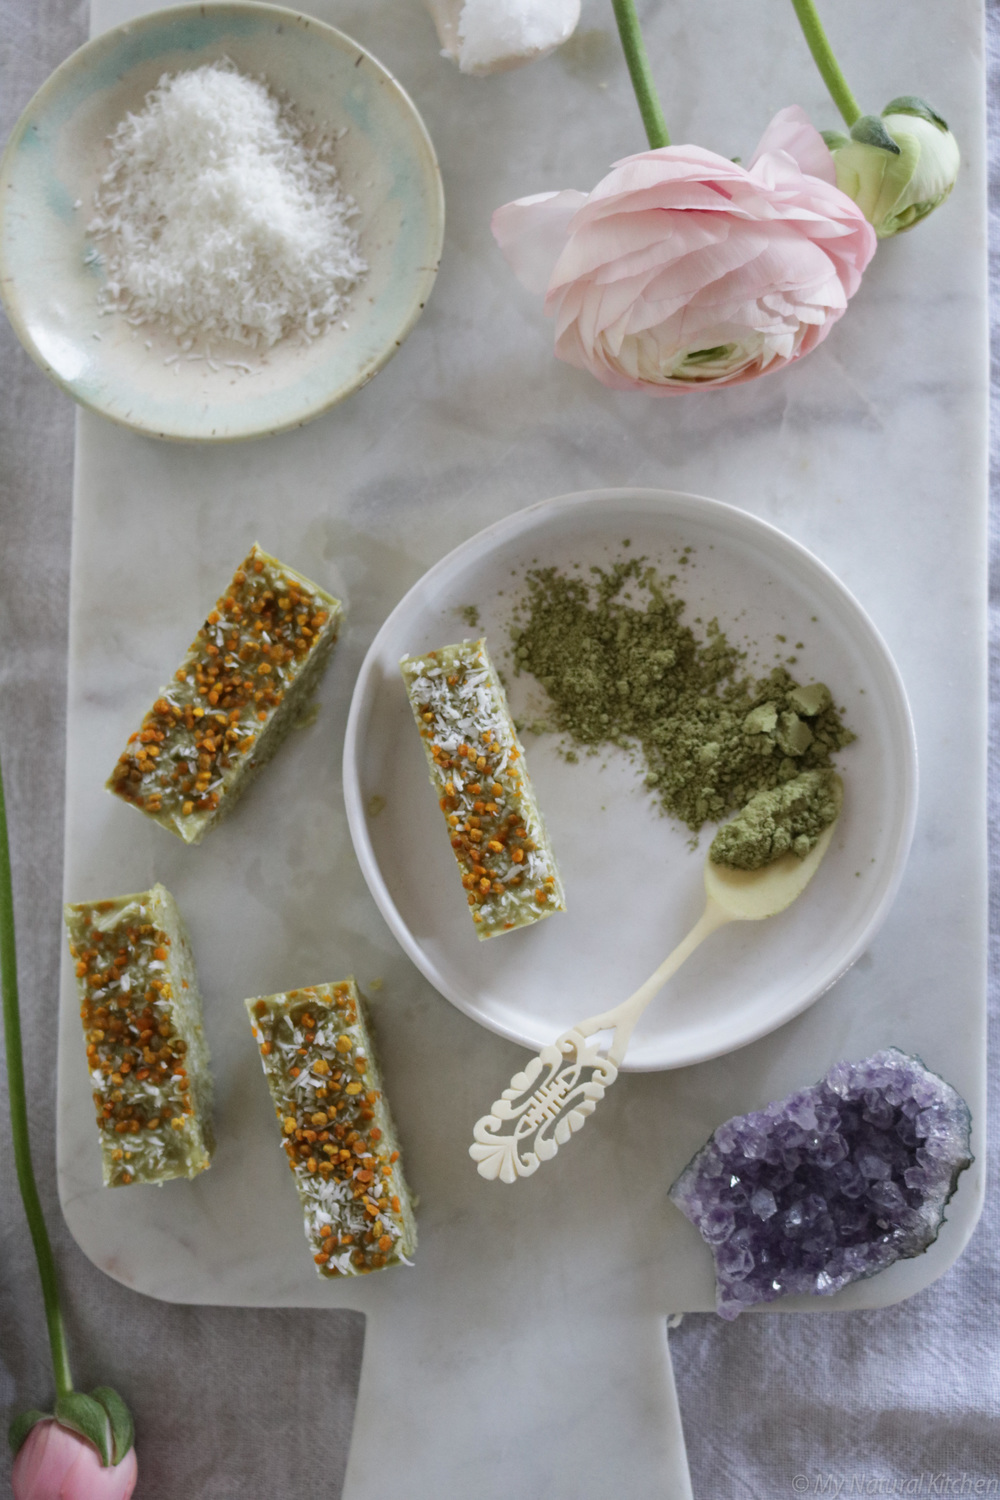 no-bake matcha coconut + bee pollen bars (gluten free, raw) from my natural kitchen